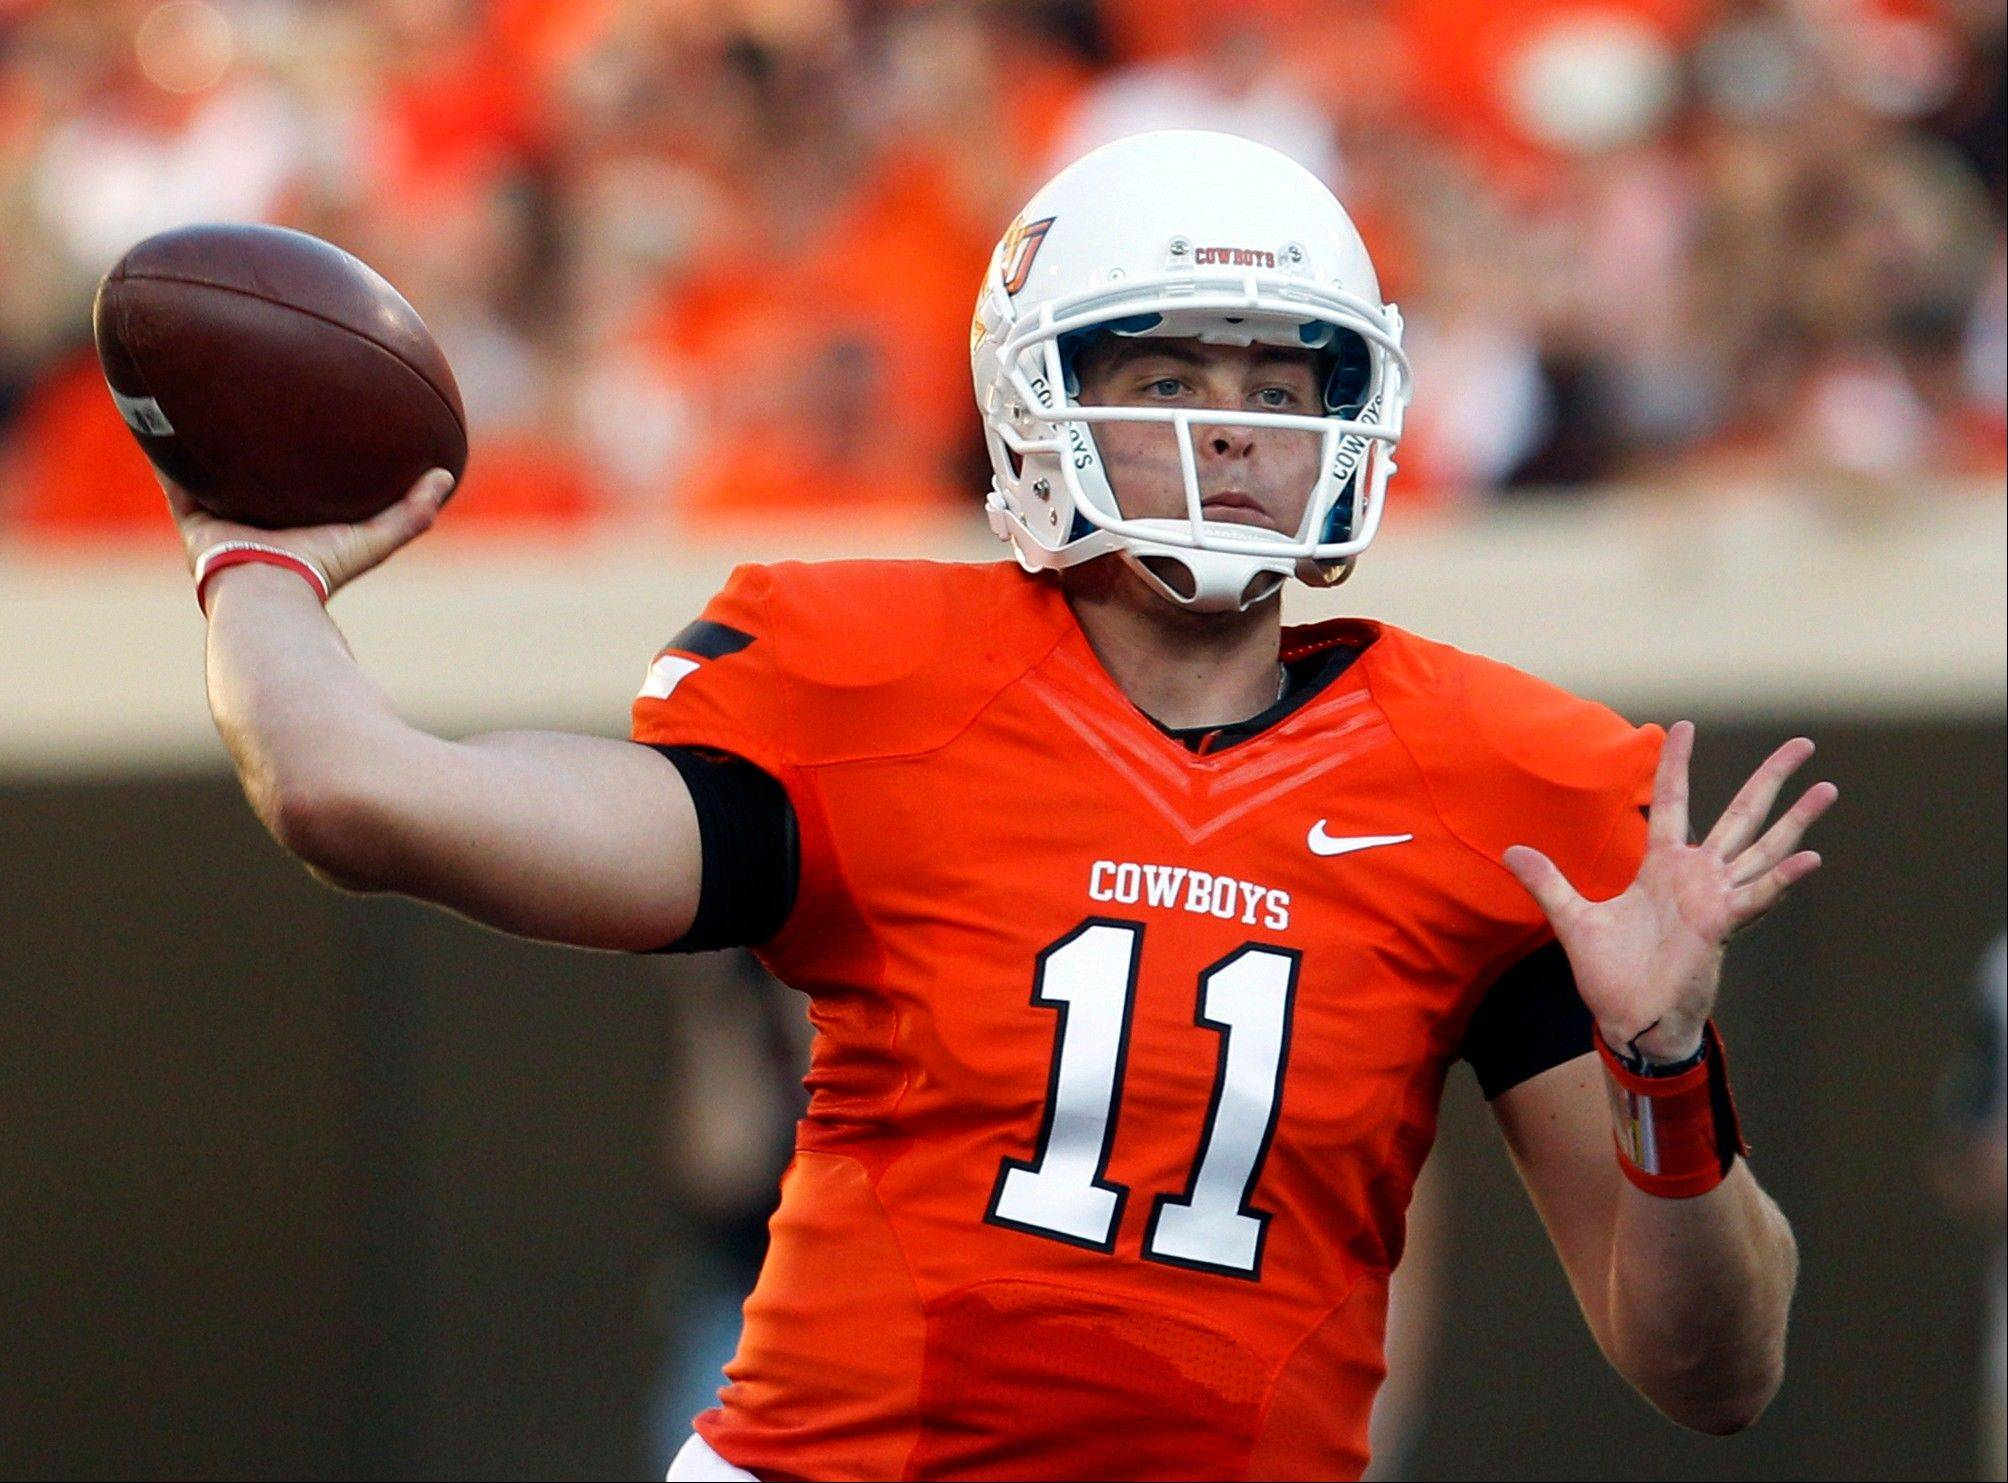 In this Sept. 1, 2012 file photo, Oklahoma State quarterback Wes Lunt throws against Savannah State during an NCAA college football game in Stillwater, Okla. Lunt will return to his home state and transfer to Illinois, a person familiar with the decision told The Associated Press on Monday, June 17, 2013.